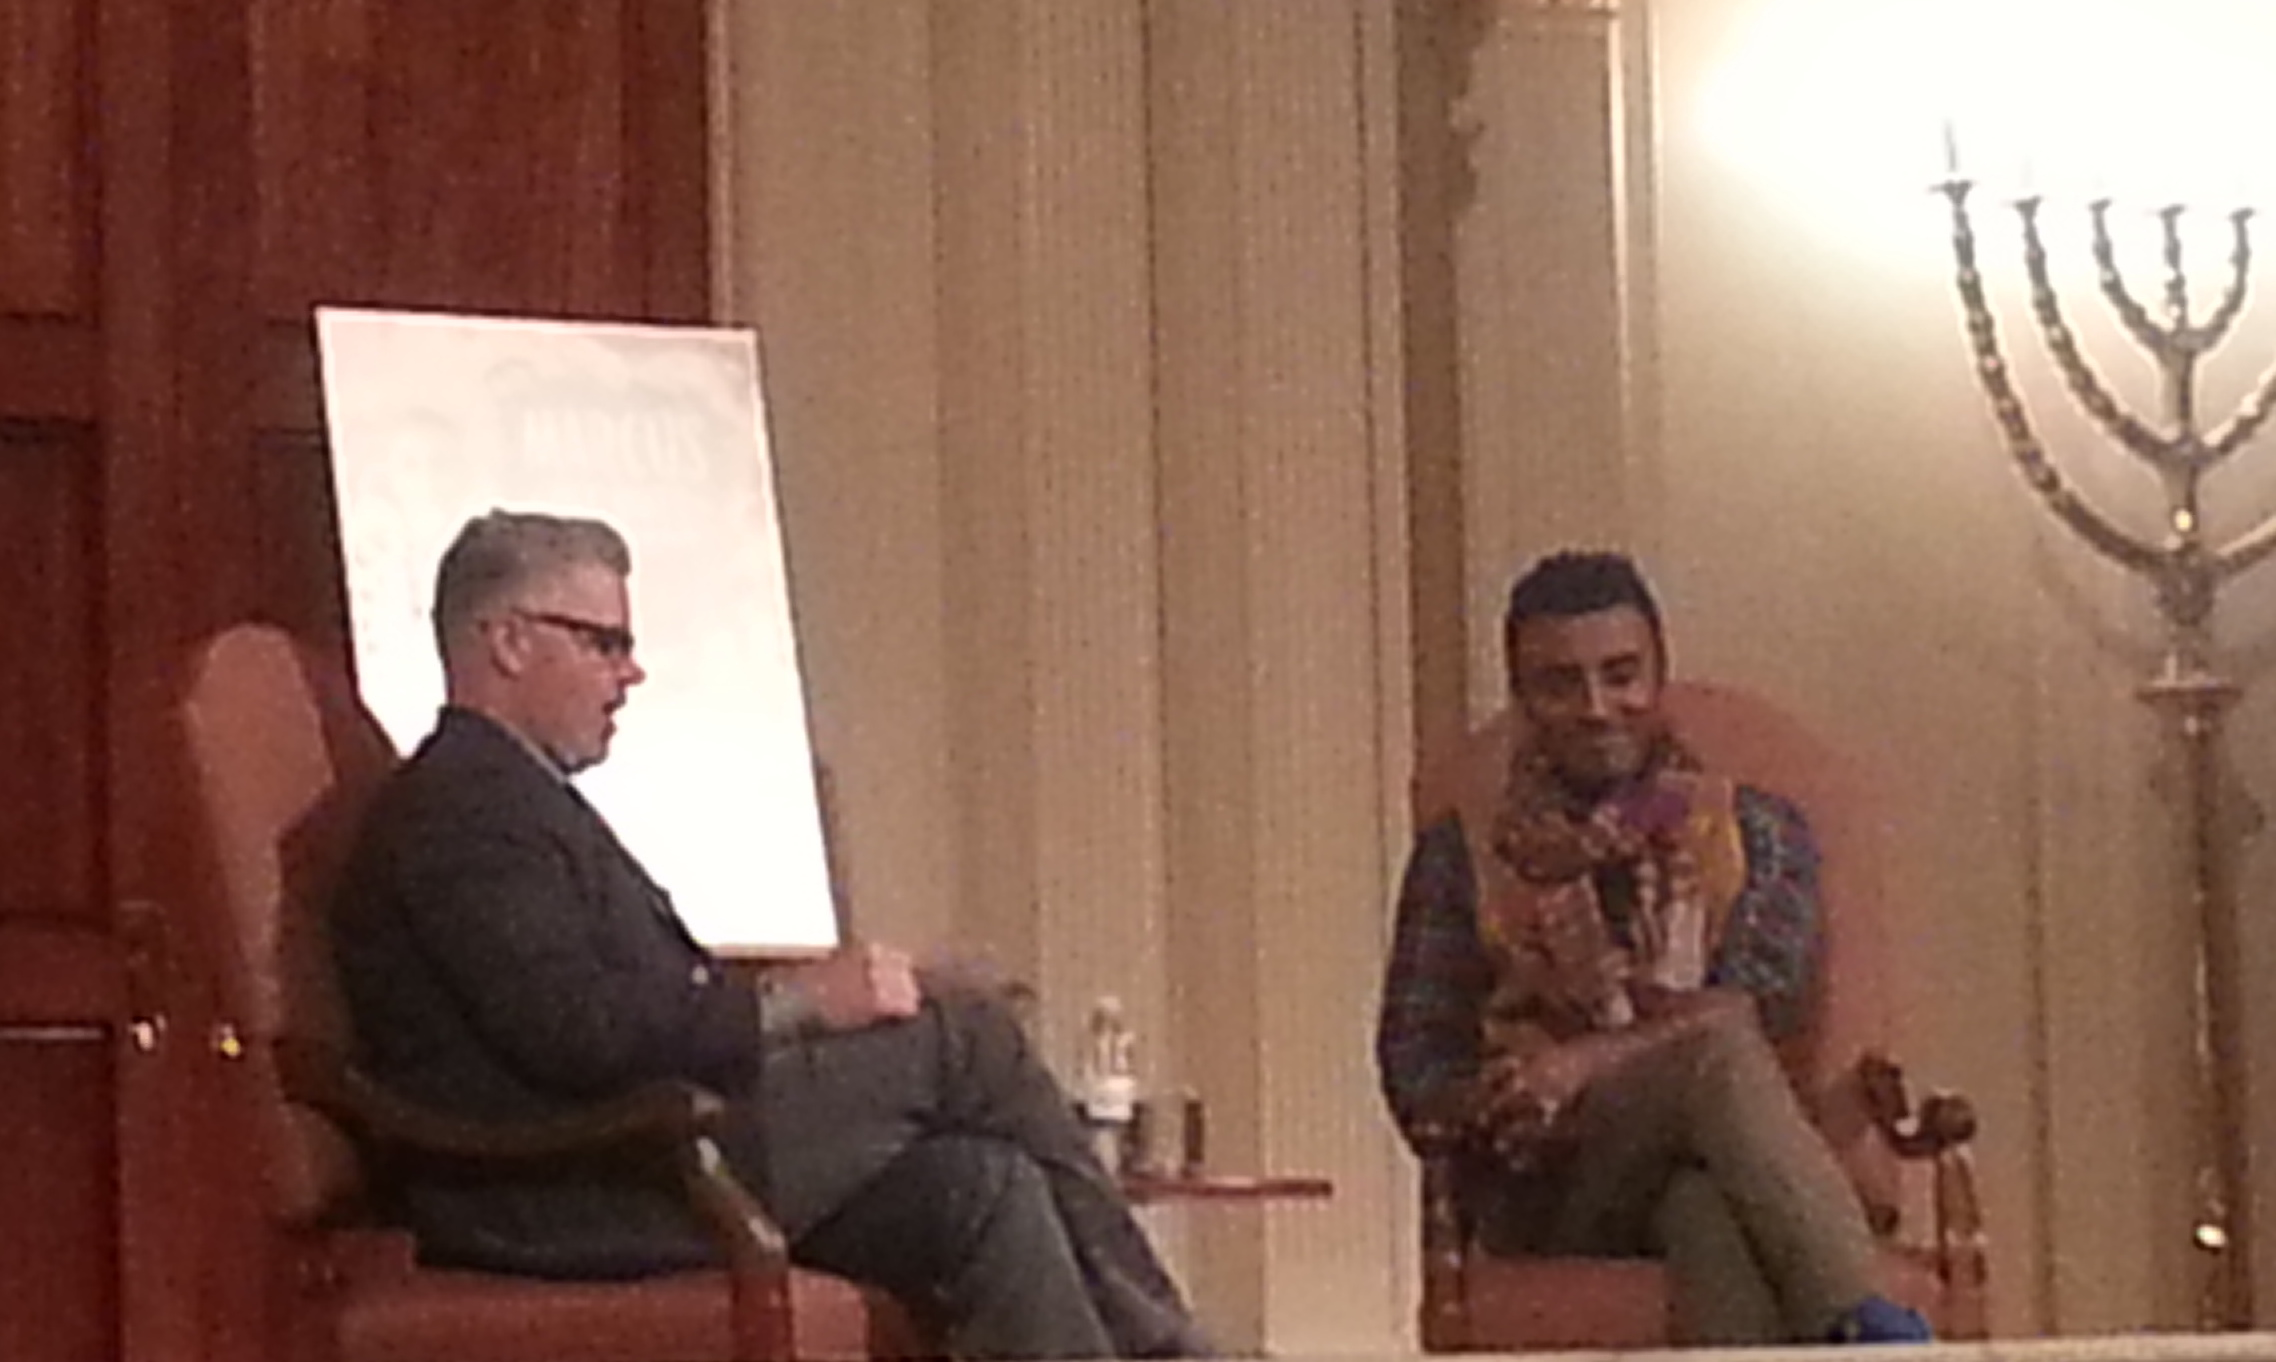 Marcus Samuelsson (right) talks with Washington Post food editor Joe Yonan at the Sixth and I Historic Synagogue. (Photo: Mark Heckathorn/DC on Heels)